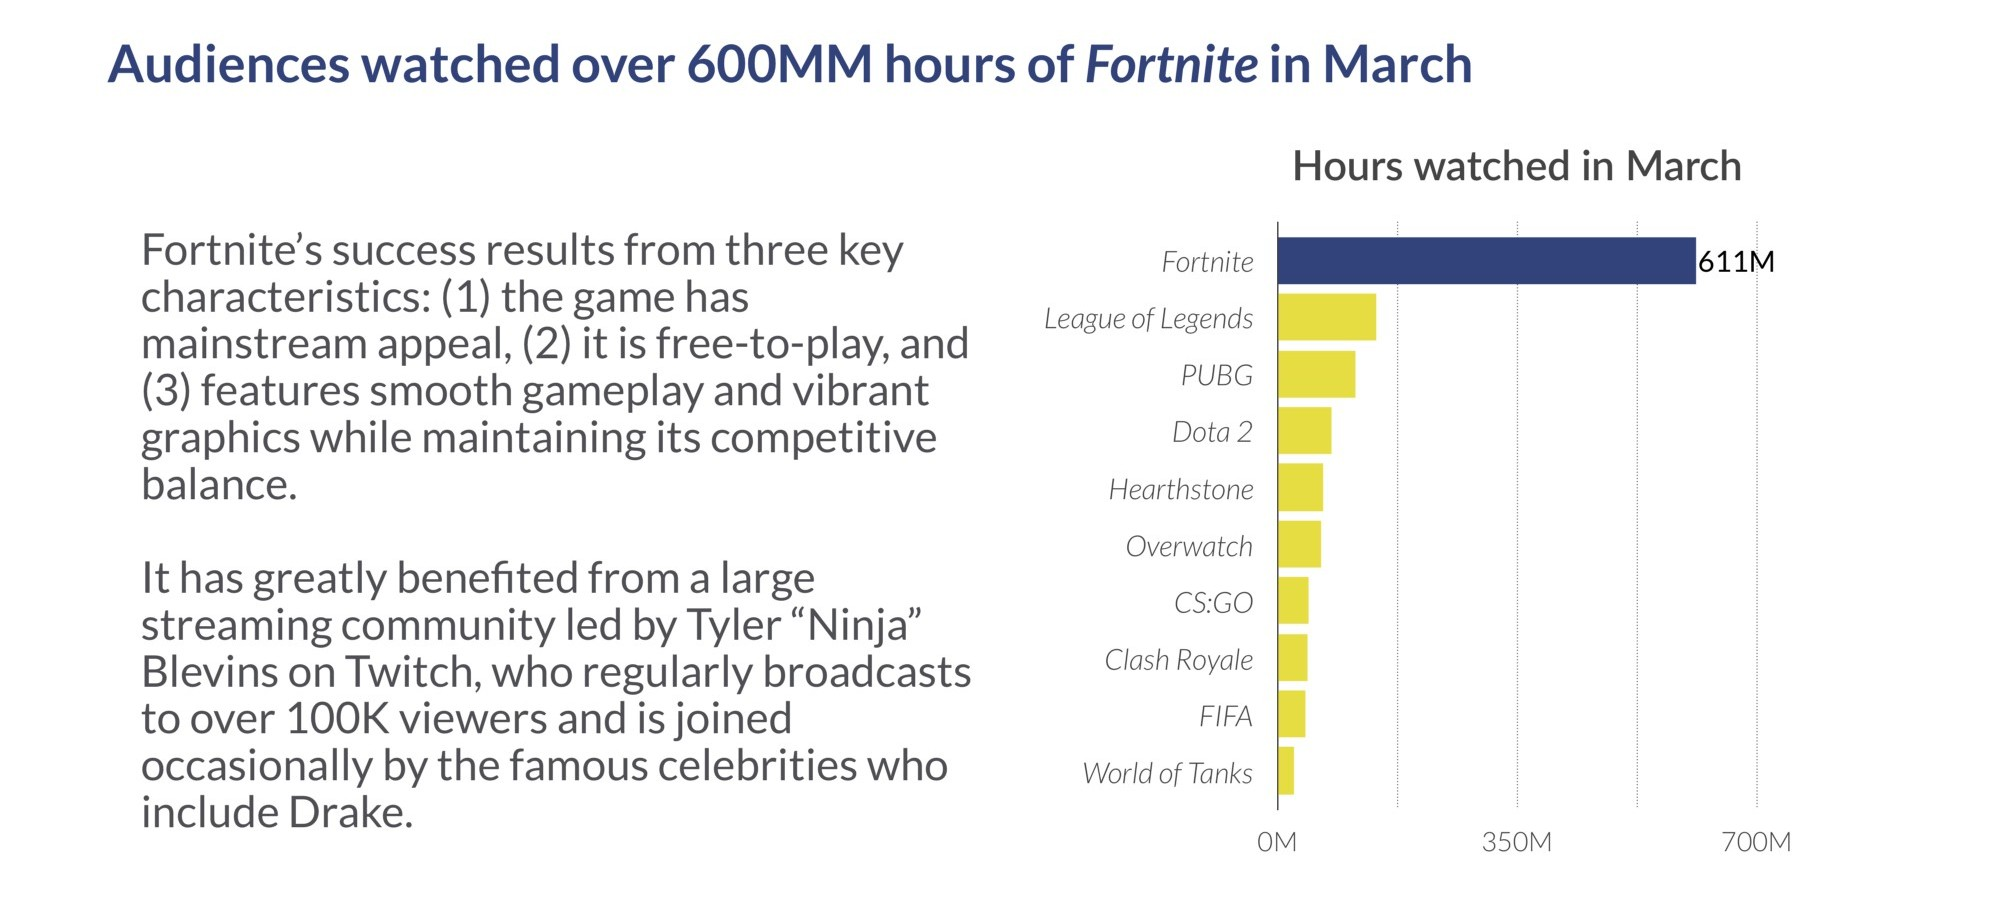 Auditoria Fortnite on Twitch 4 times more than the nearest competitor